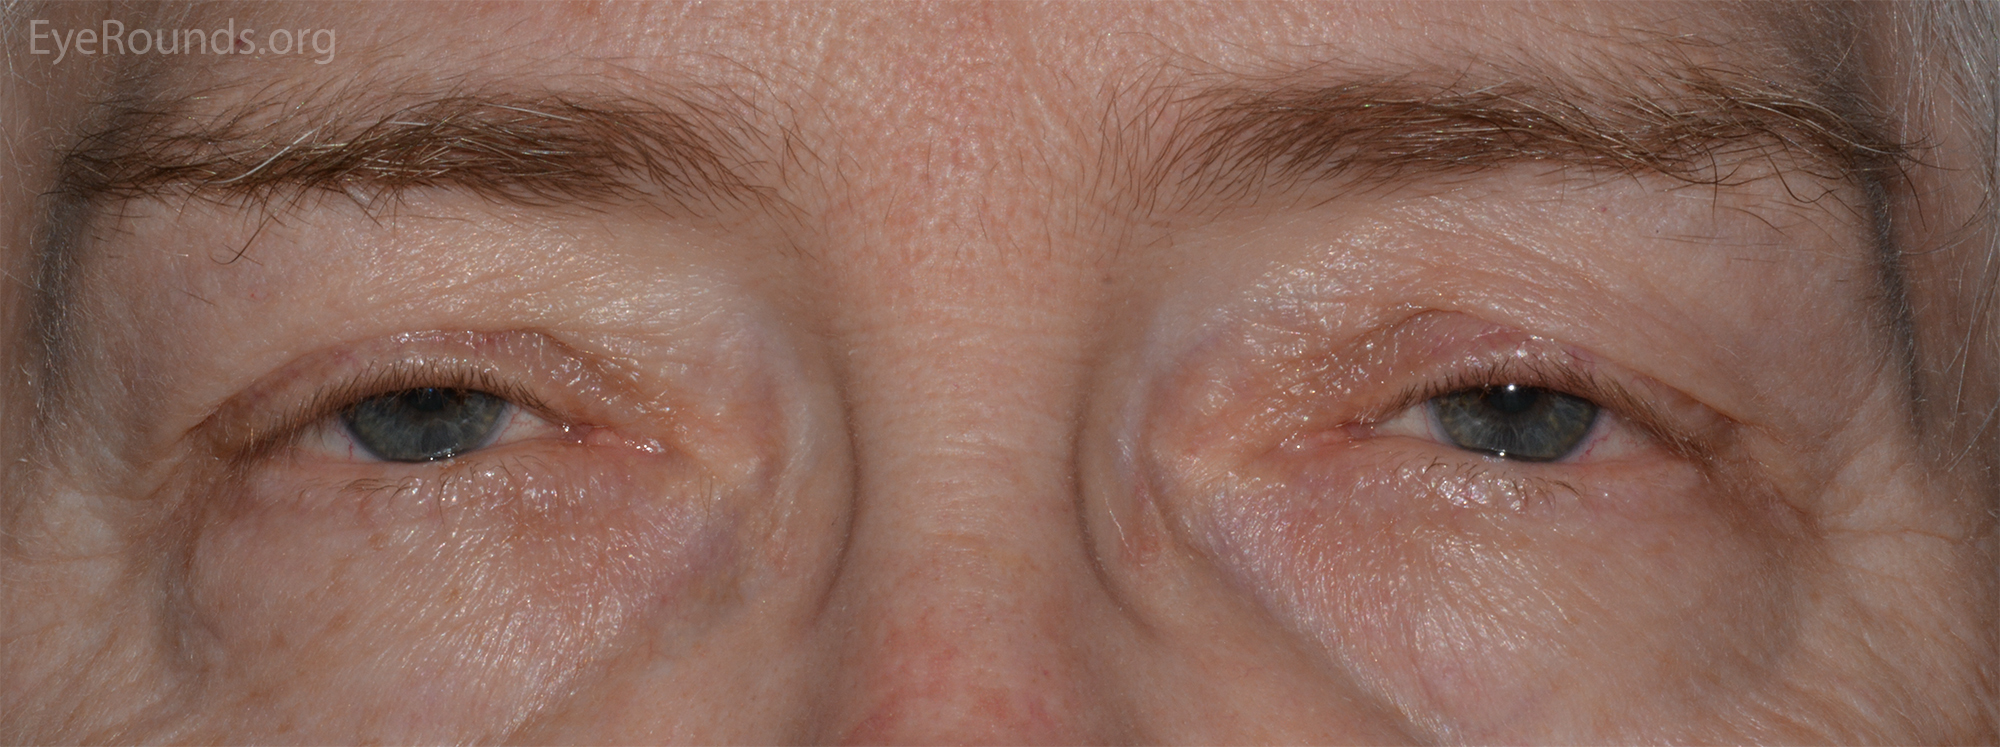 ilateral ptosis. Note the decreased margin reflex distance (MRD1). The  corneal light